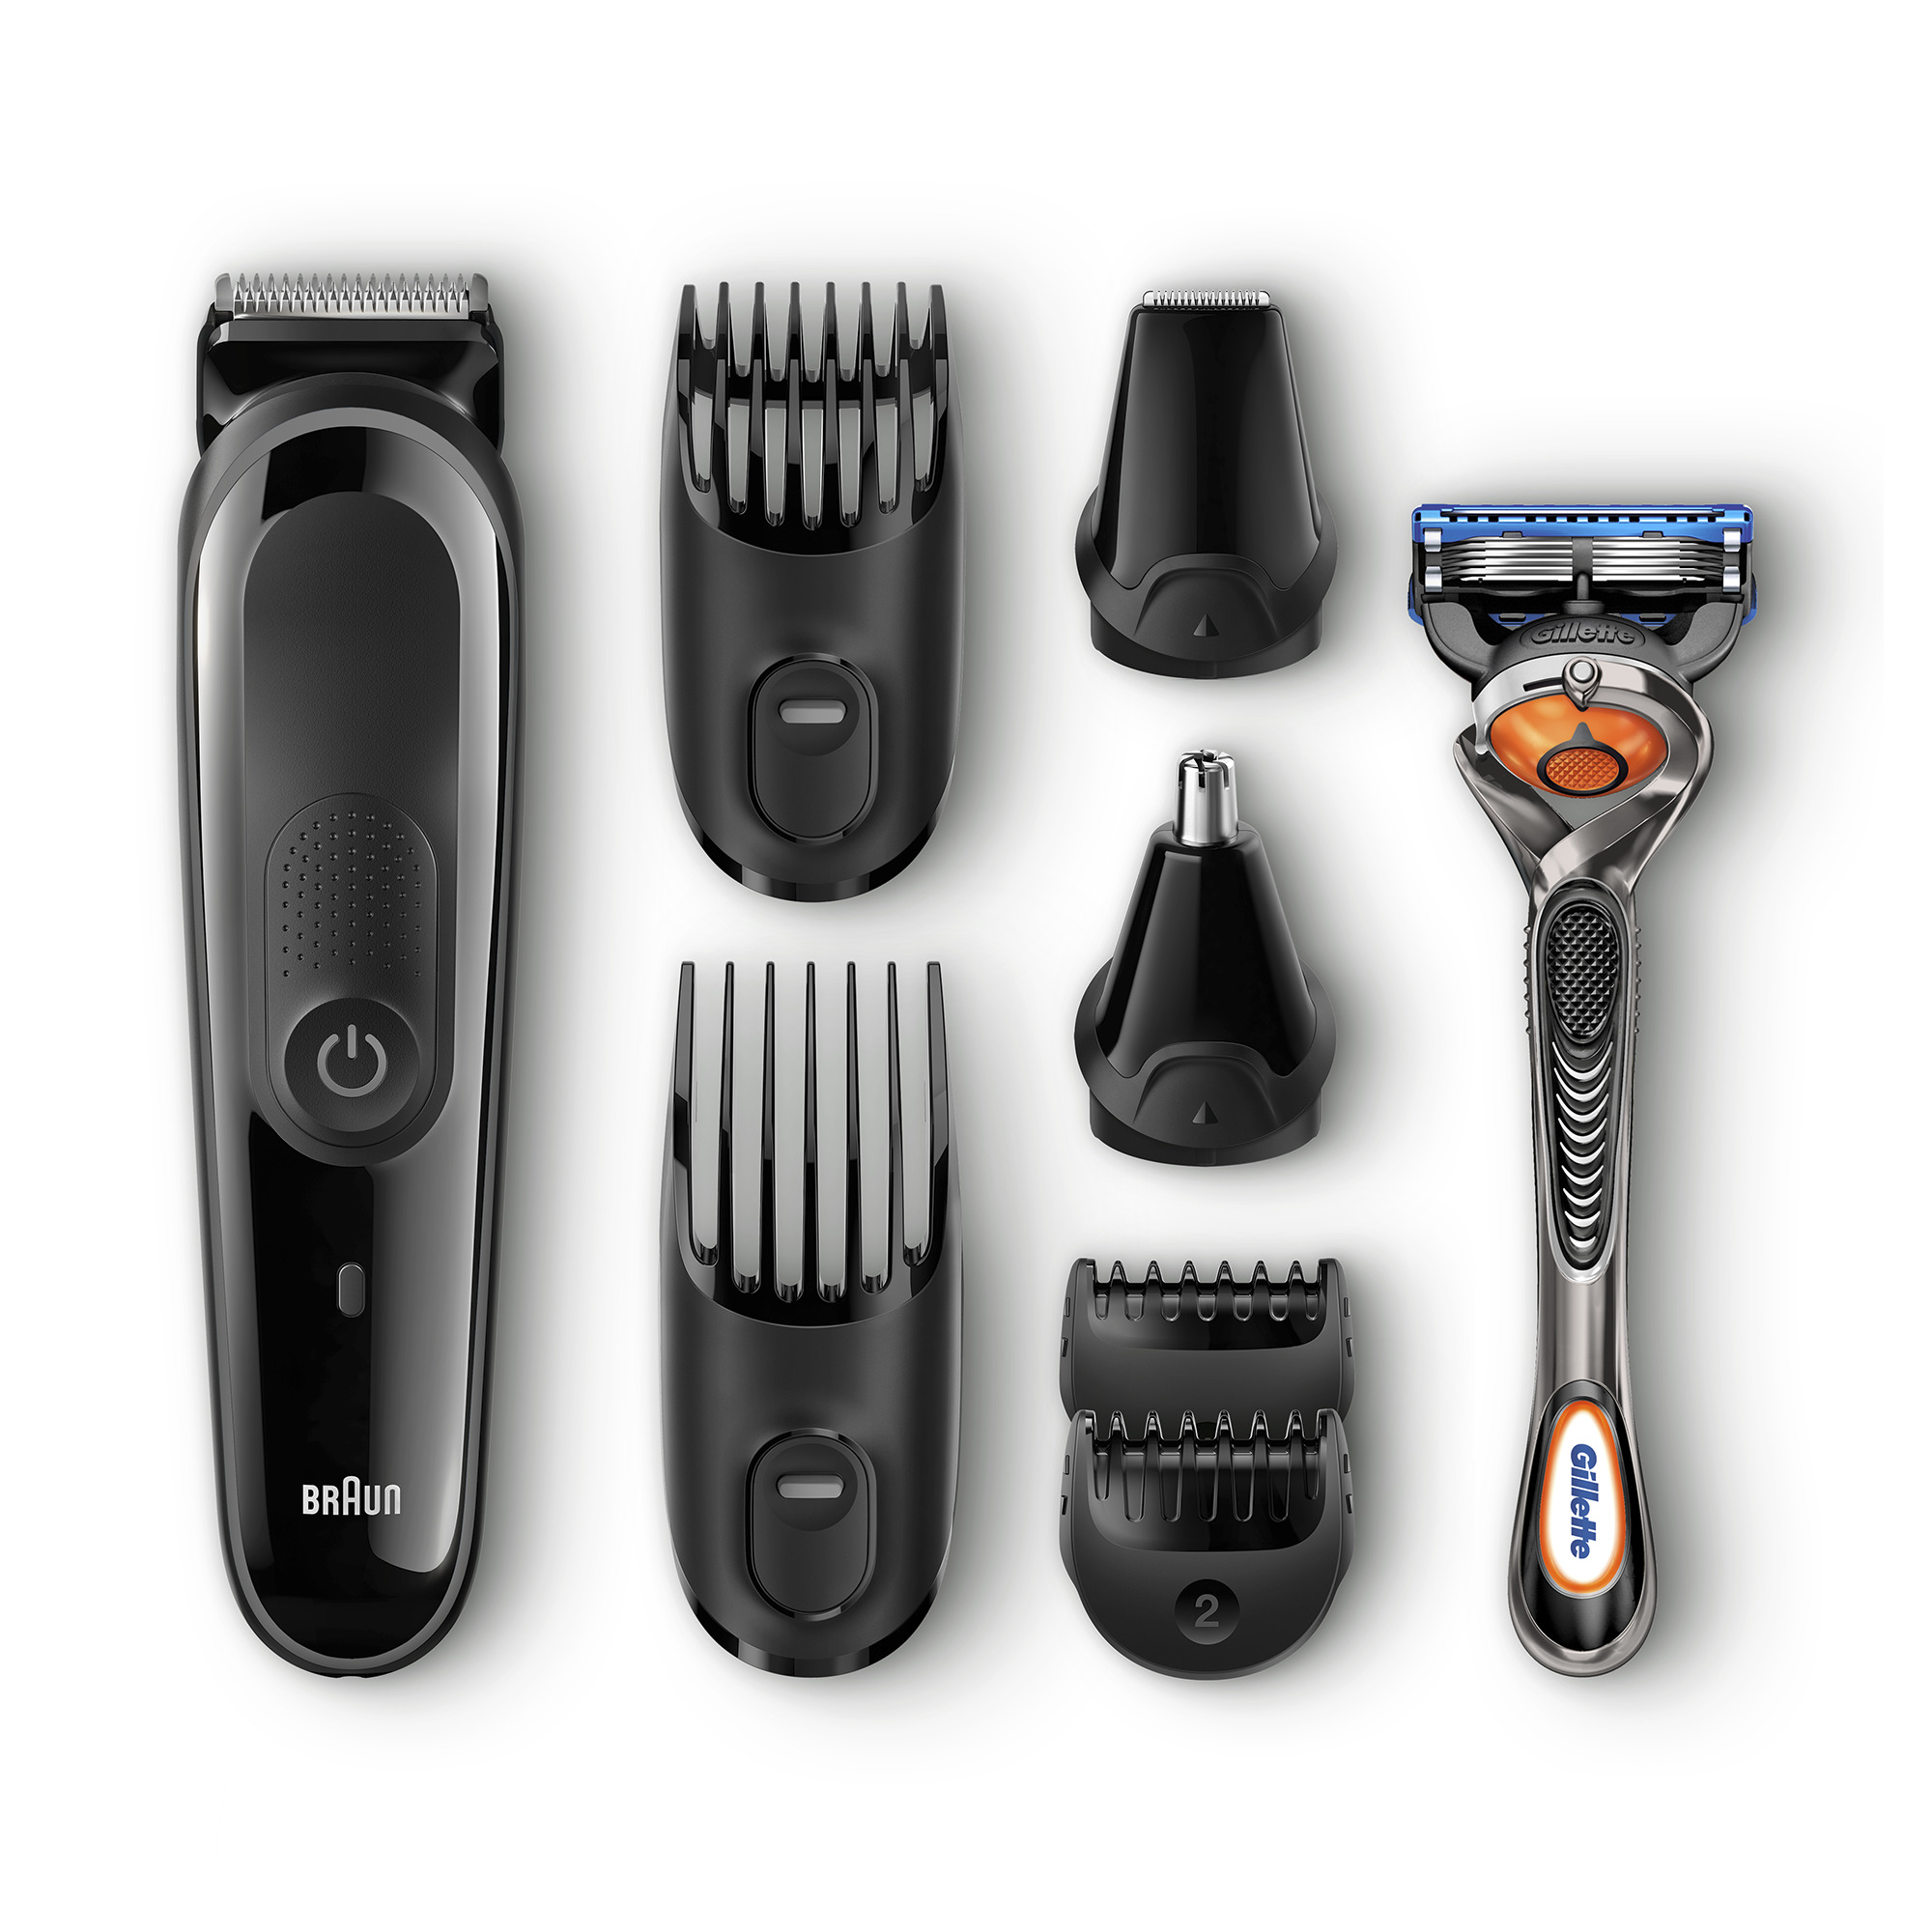 Braun All-In-One Trimmer MGK3060 Shave & Trim Kit with 4 Combs, 2 Attachments, Razor, Cartridge